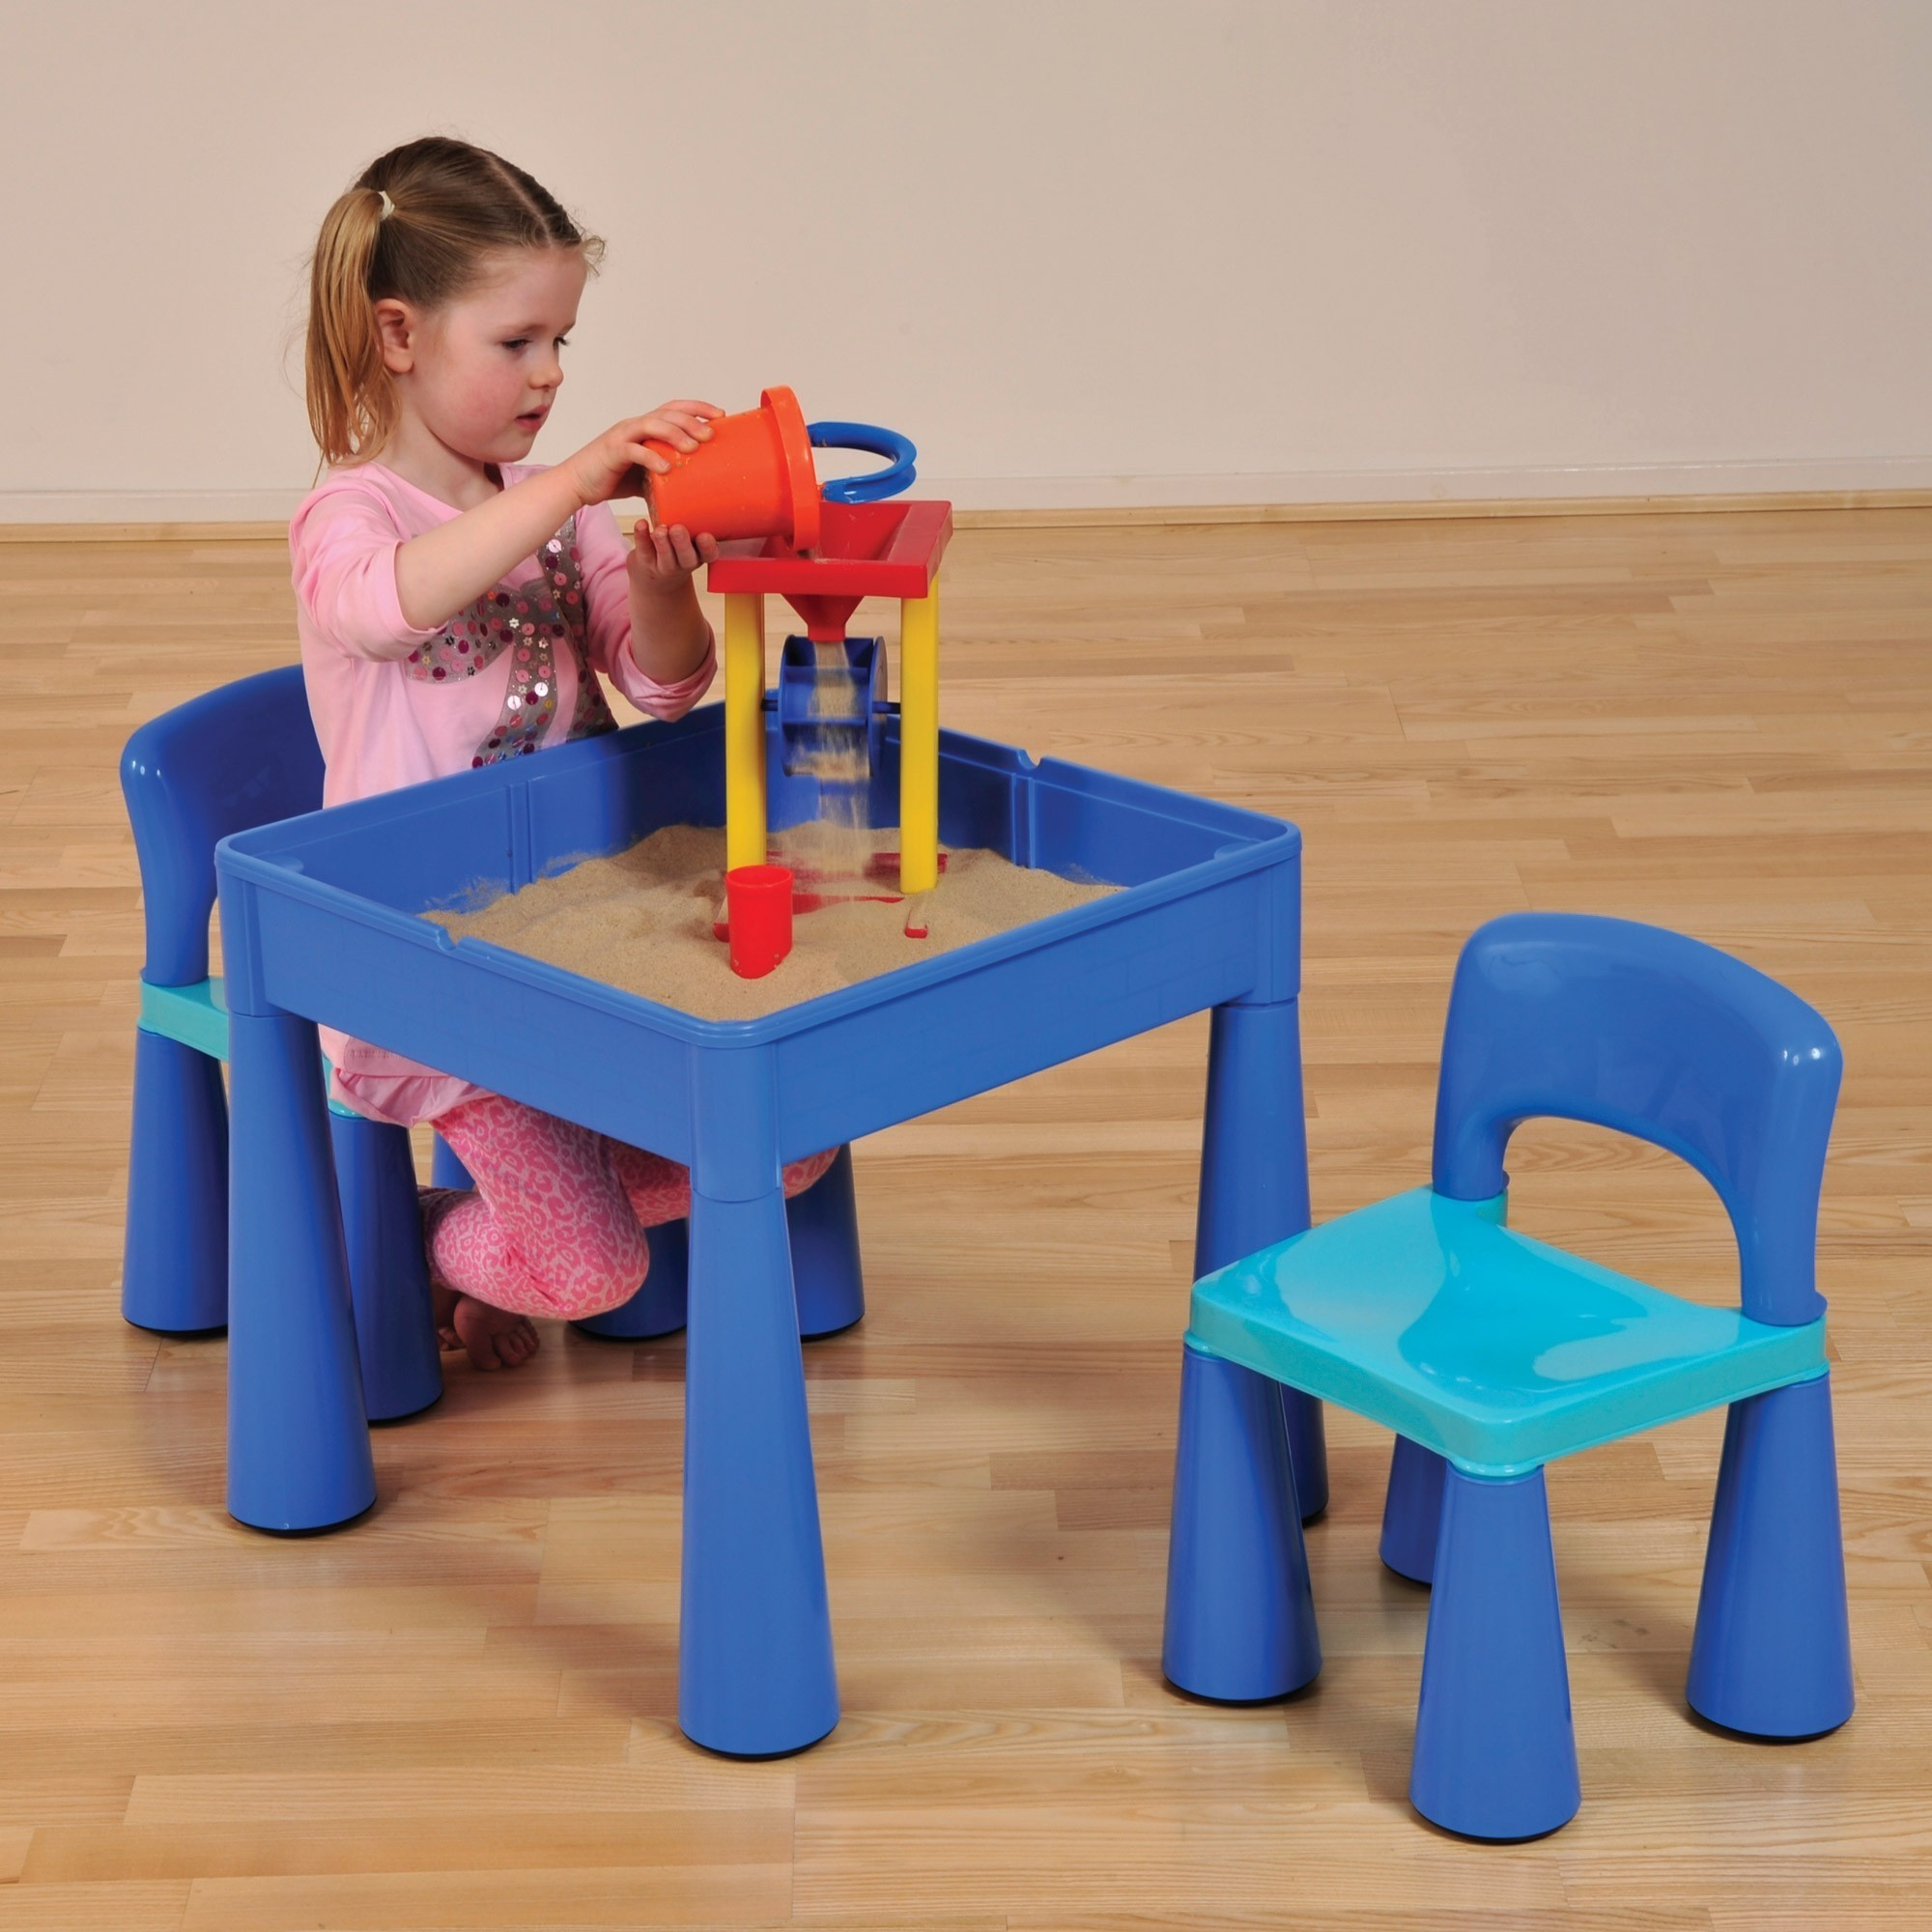 25714678d9e7 5 in 1 Multipurpose Activity Table   2 Chairs – Blue - Liberty House Toys  (899B)